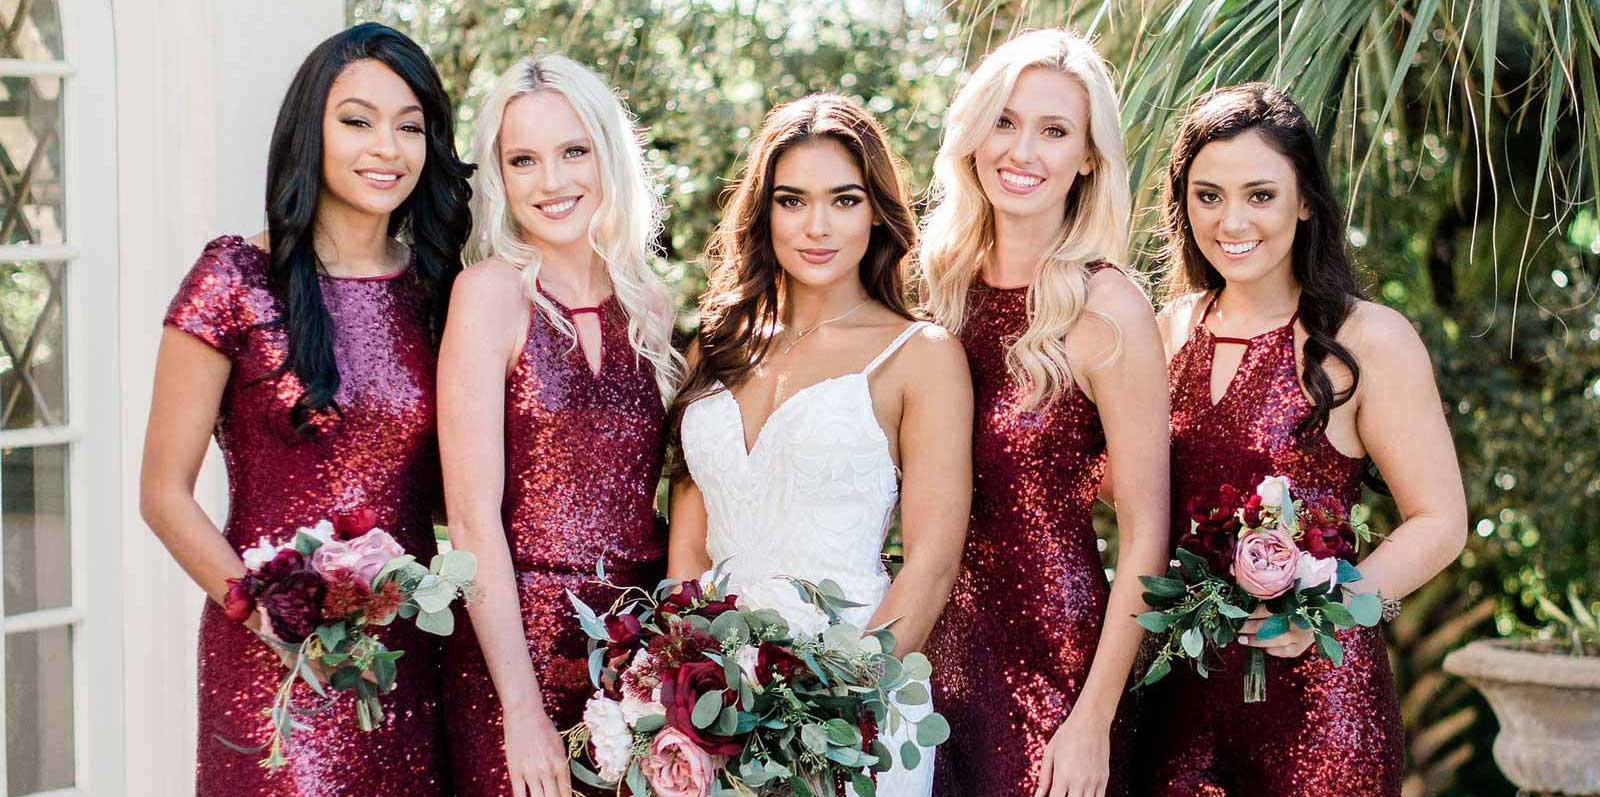 bb1cac5406b ... bridesmaid dresses, designed to match and compliment the overall look  of your wedding attire. Please enquire about our options for: Mother of the  bride ...